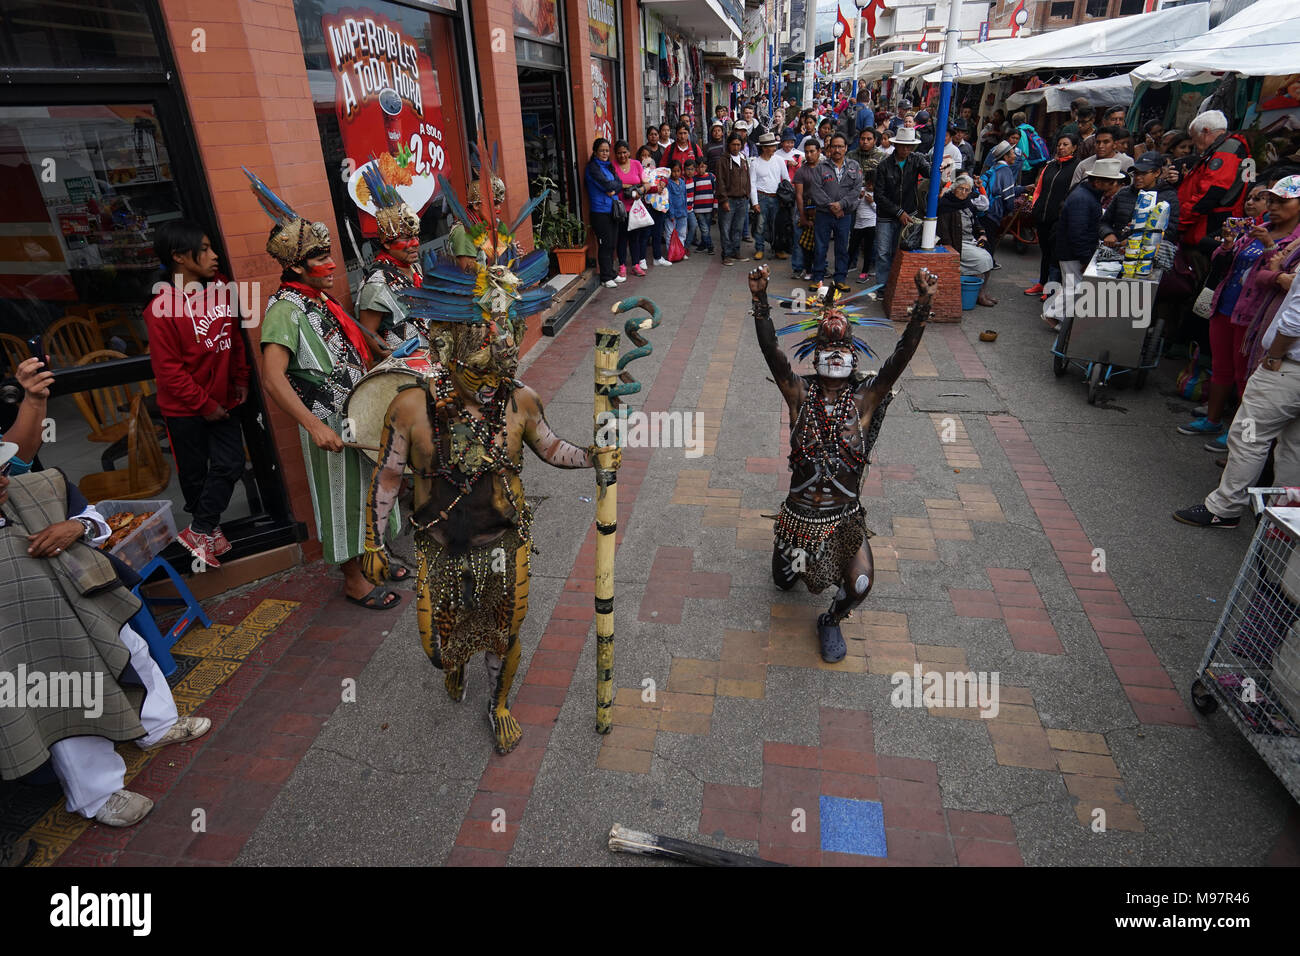 Otavalo, Ecuador- March 17, 2018: indigenous musicians and dancer performing in the artisan market - Stock Image